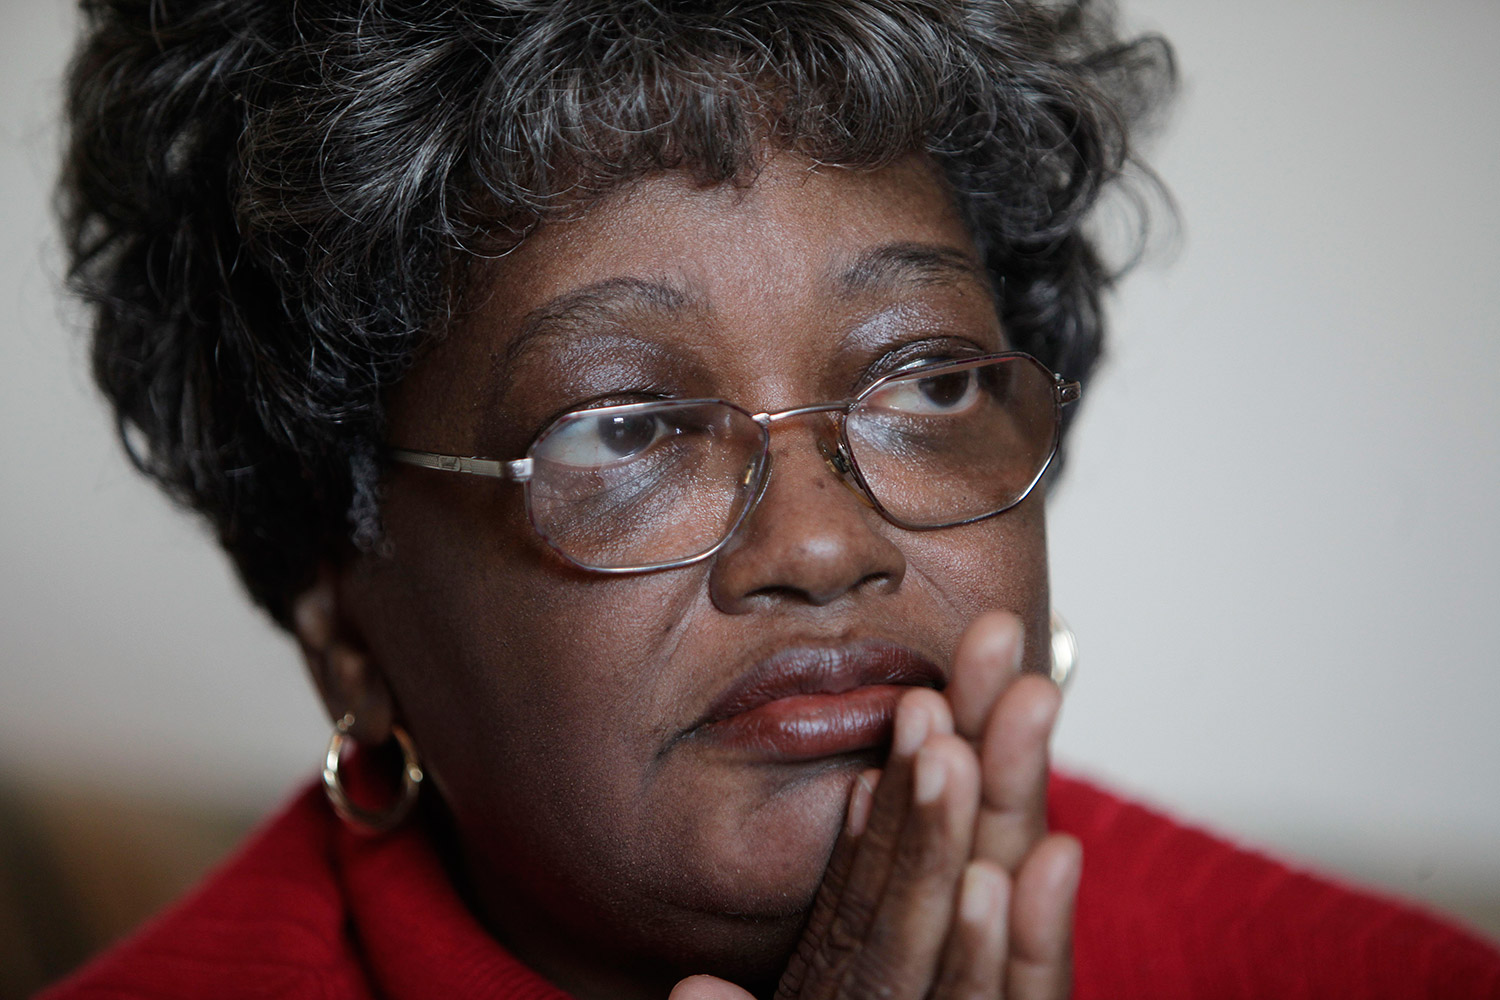 Commentary Before Rosa Parks There Was Claudette Colvin Who Deserves Presidential Recognition